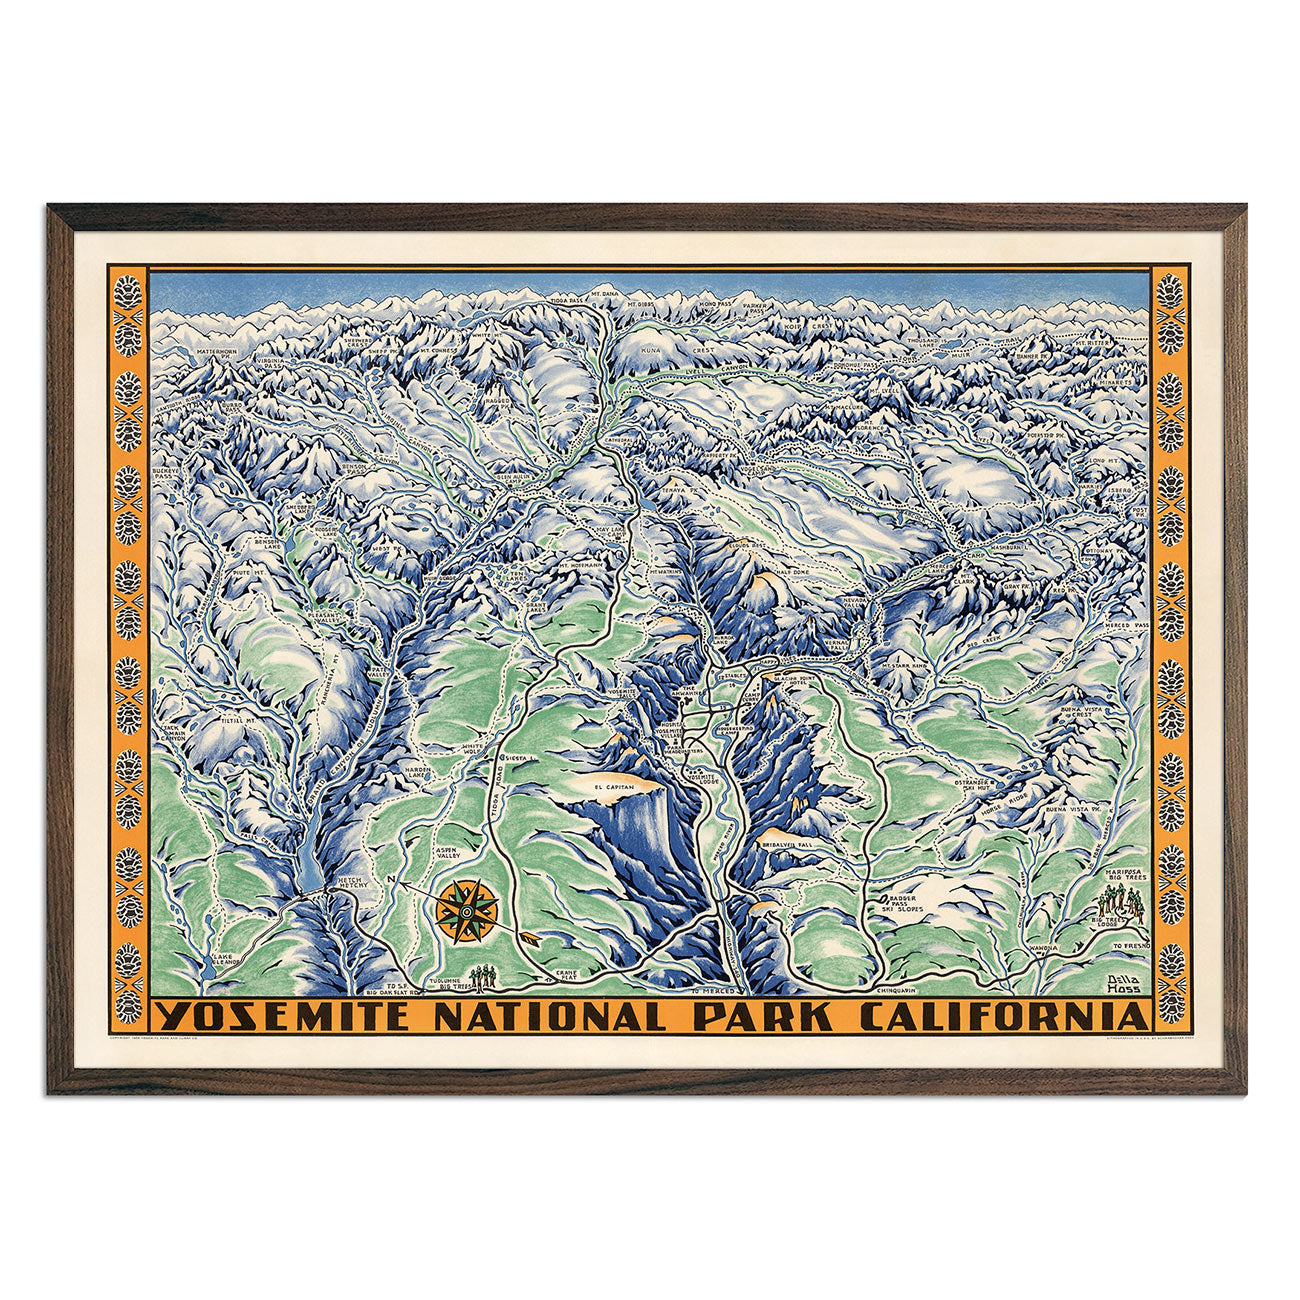 Yosemite National Park Map 1955